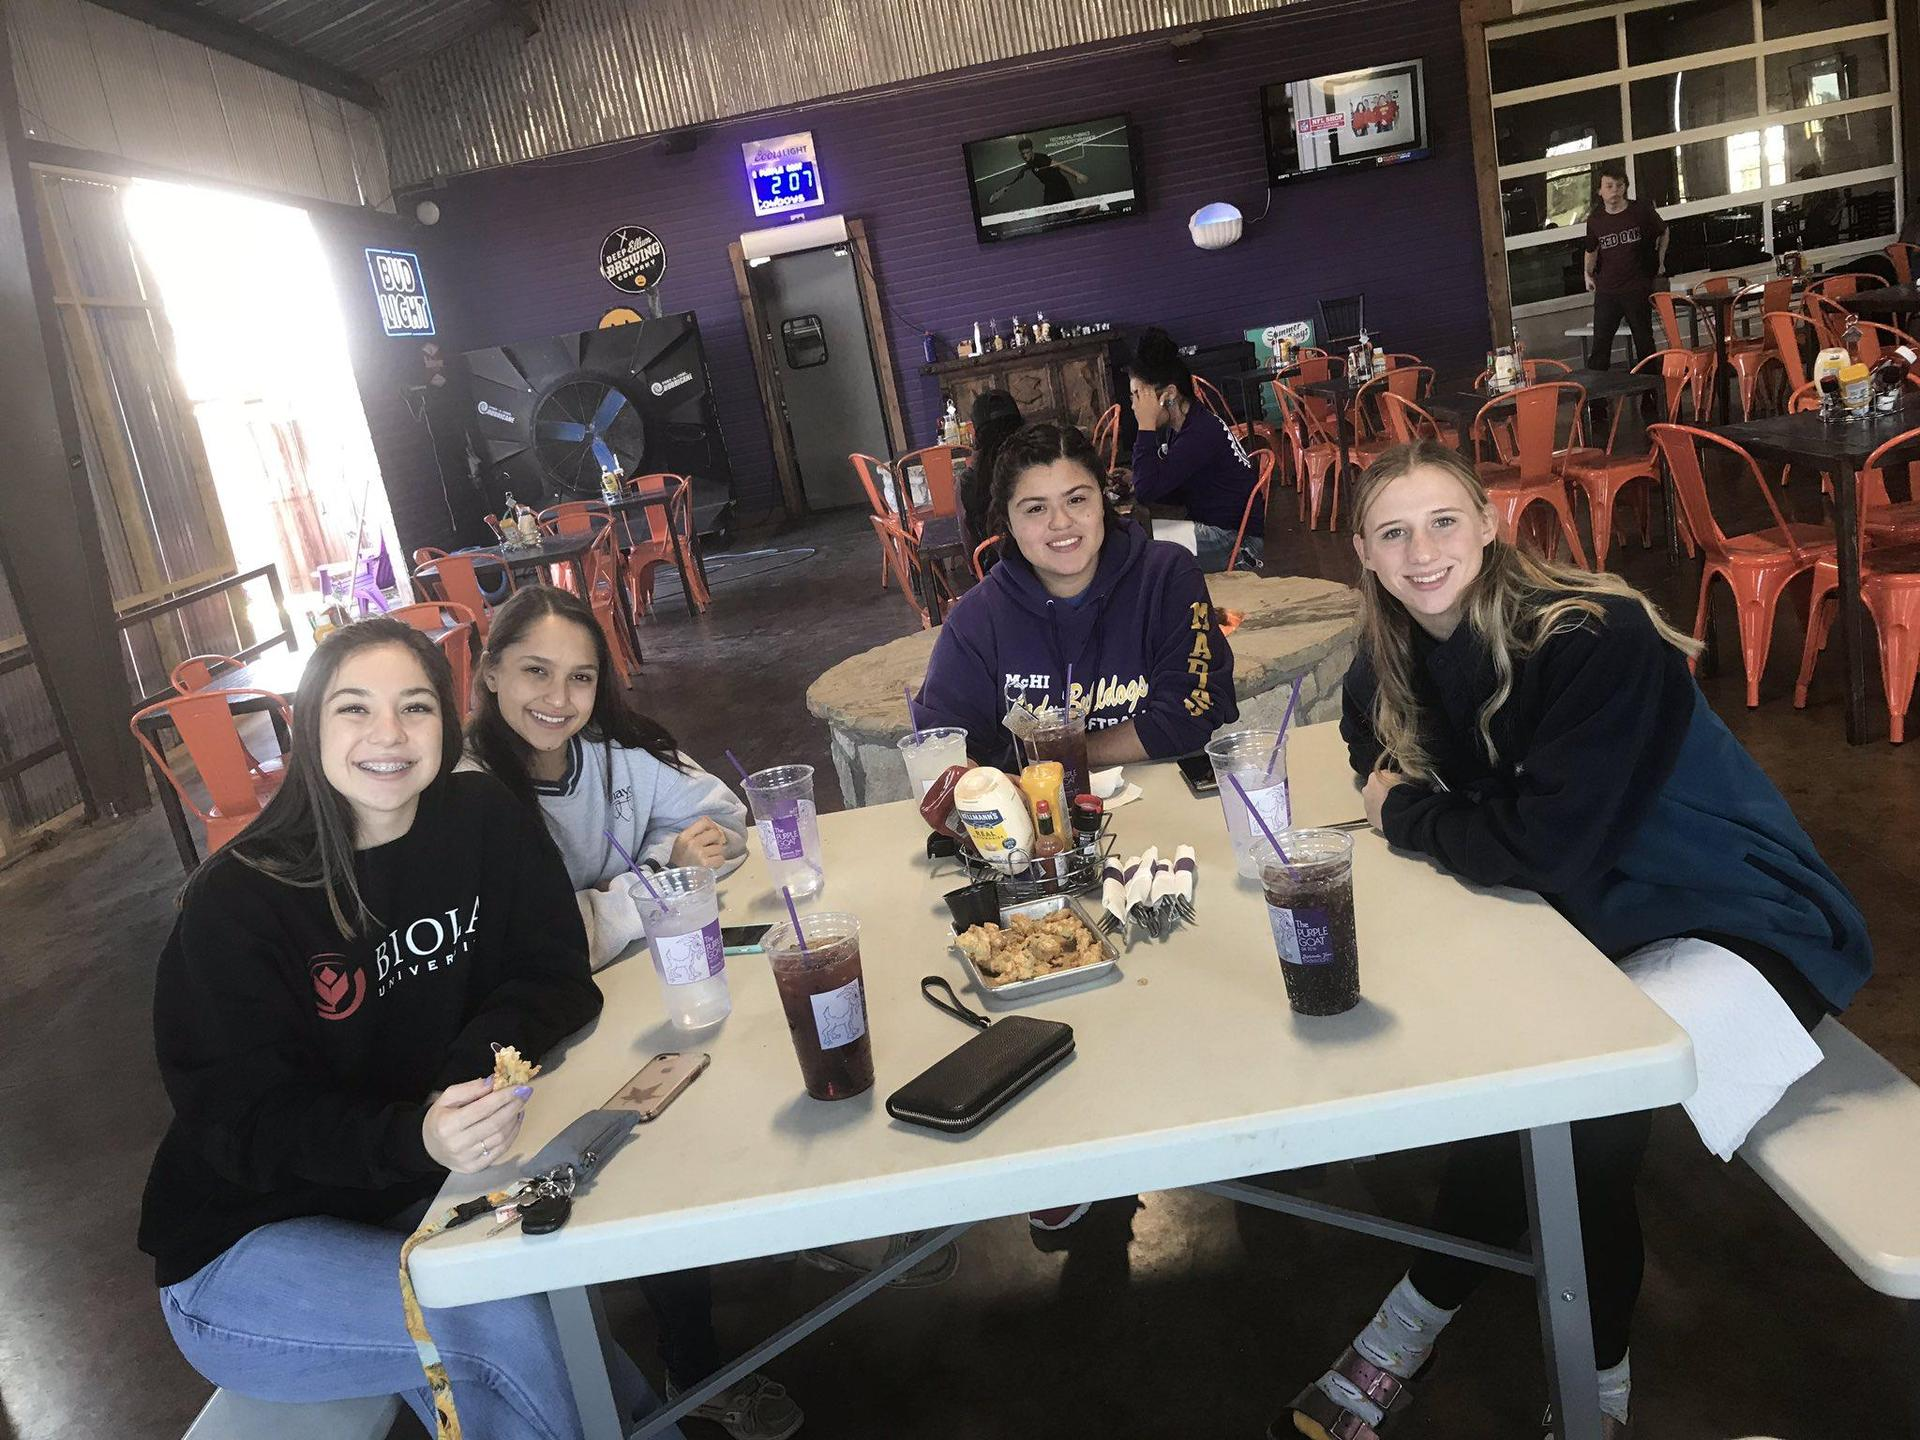 students sitting and eating in restaurant smiling